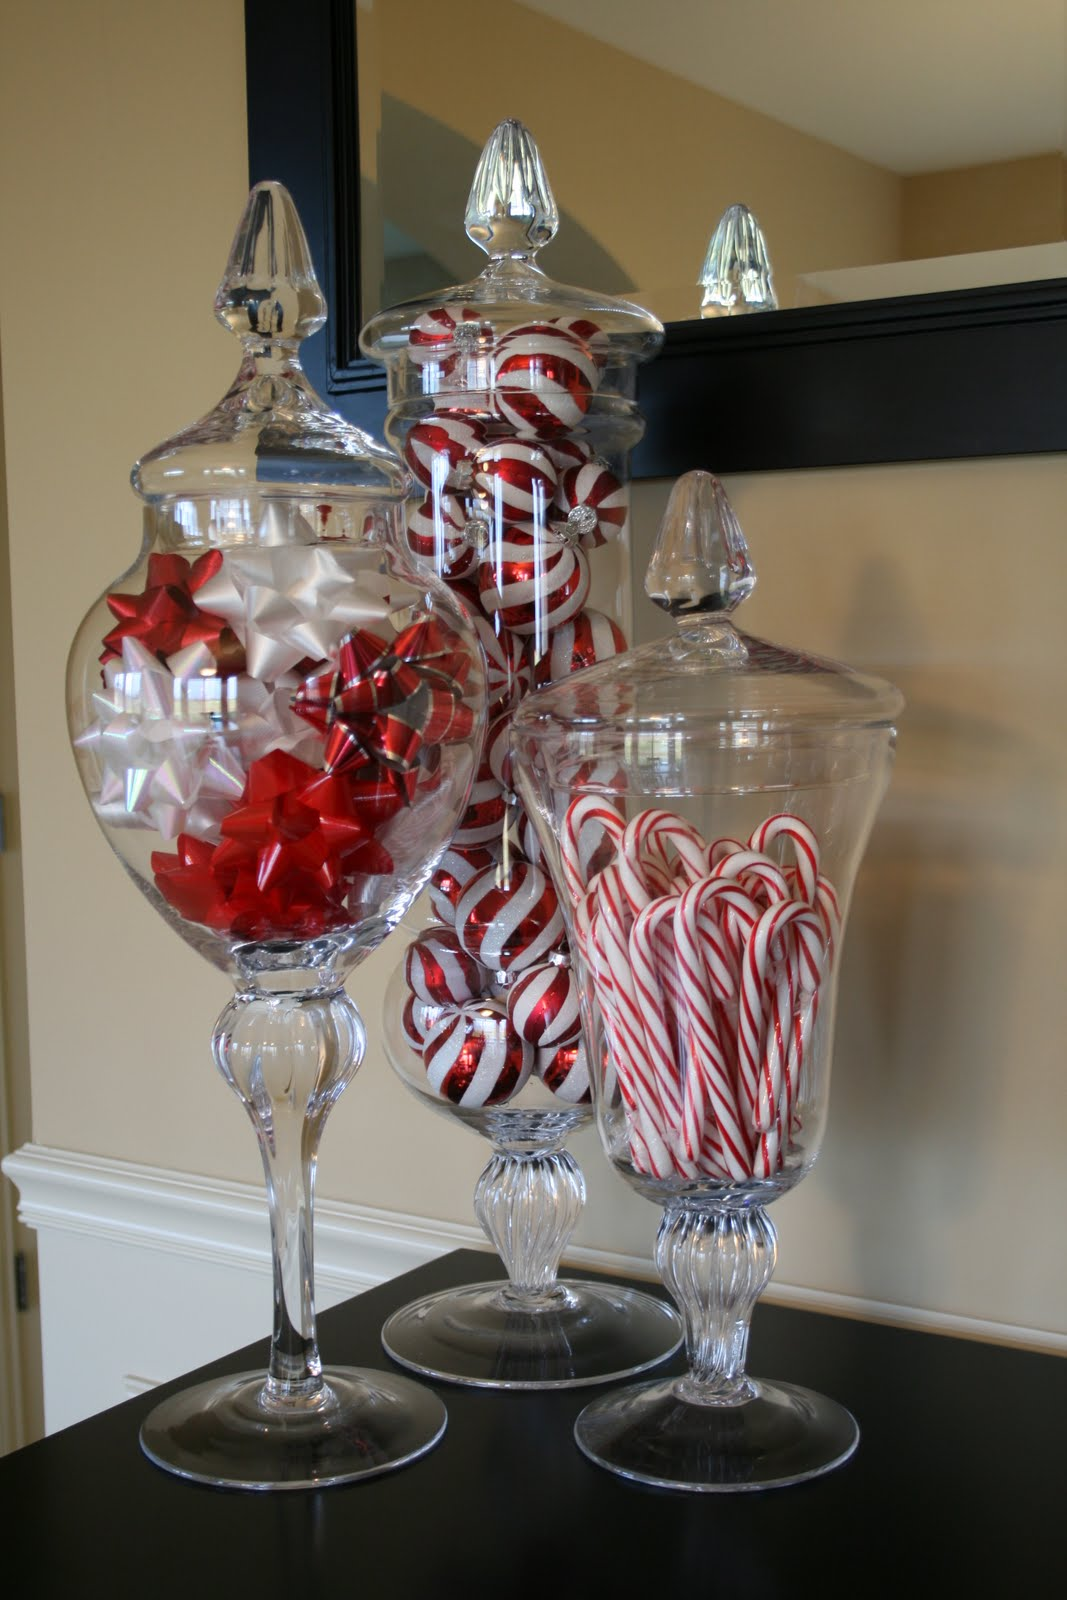 Candycanes, Holiday Bows, and Ornament filled Apothecary Jars